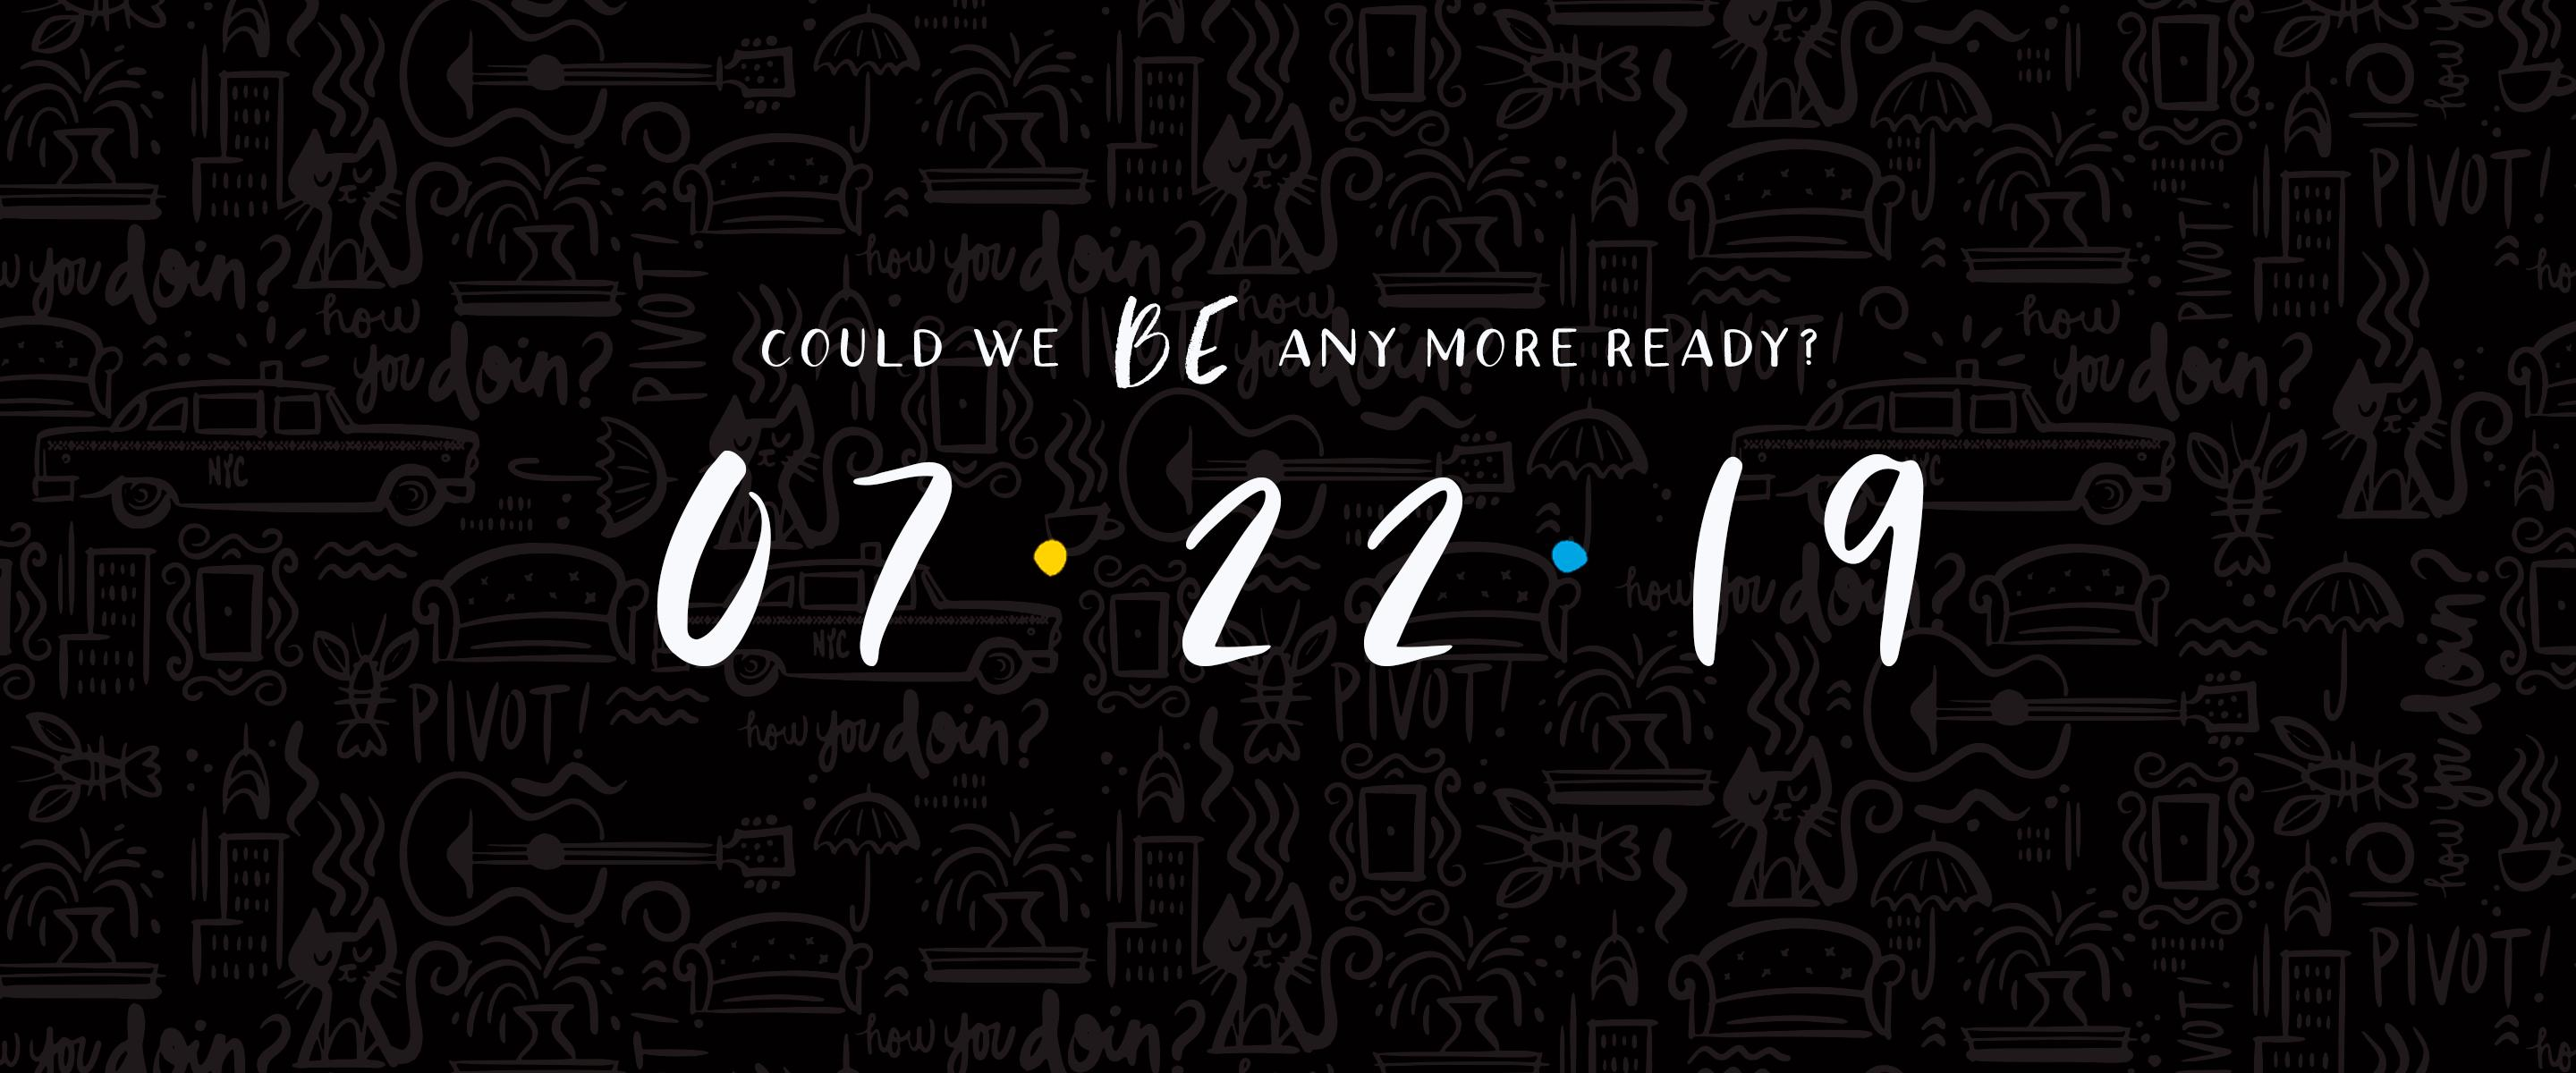 Could we be any more ready? 7.22.19